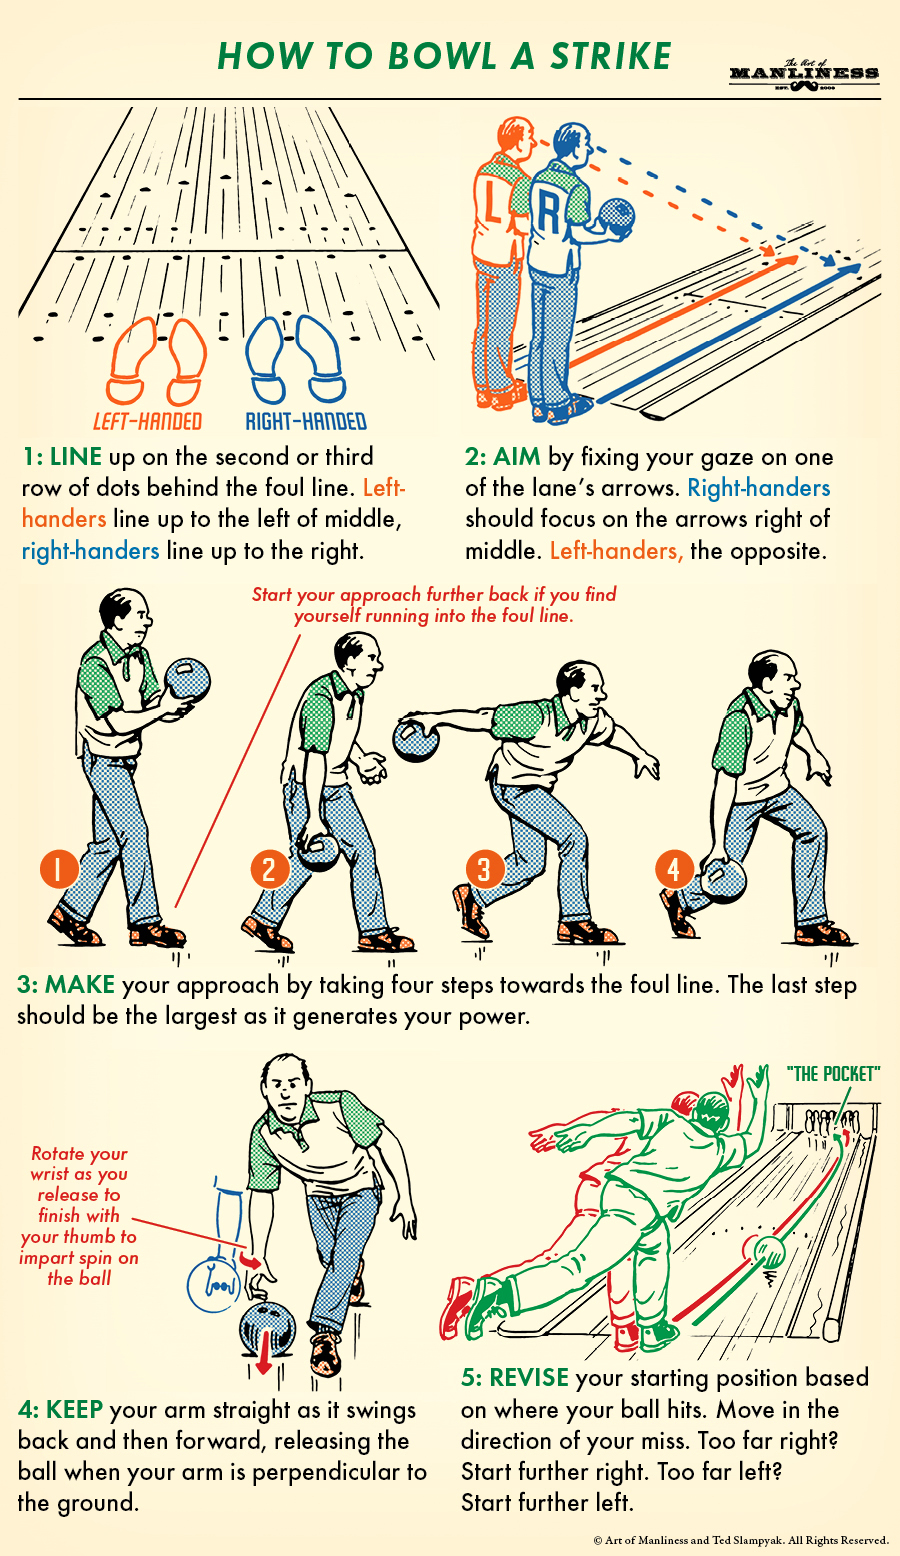 Poster by Art of Manliness about how to bowl a strike.